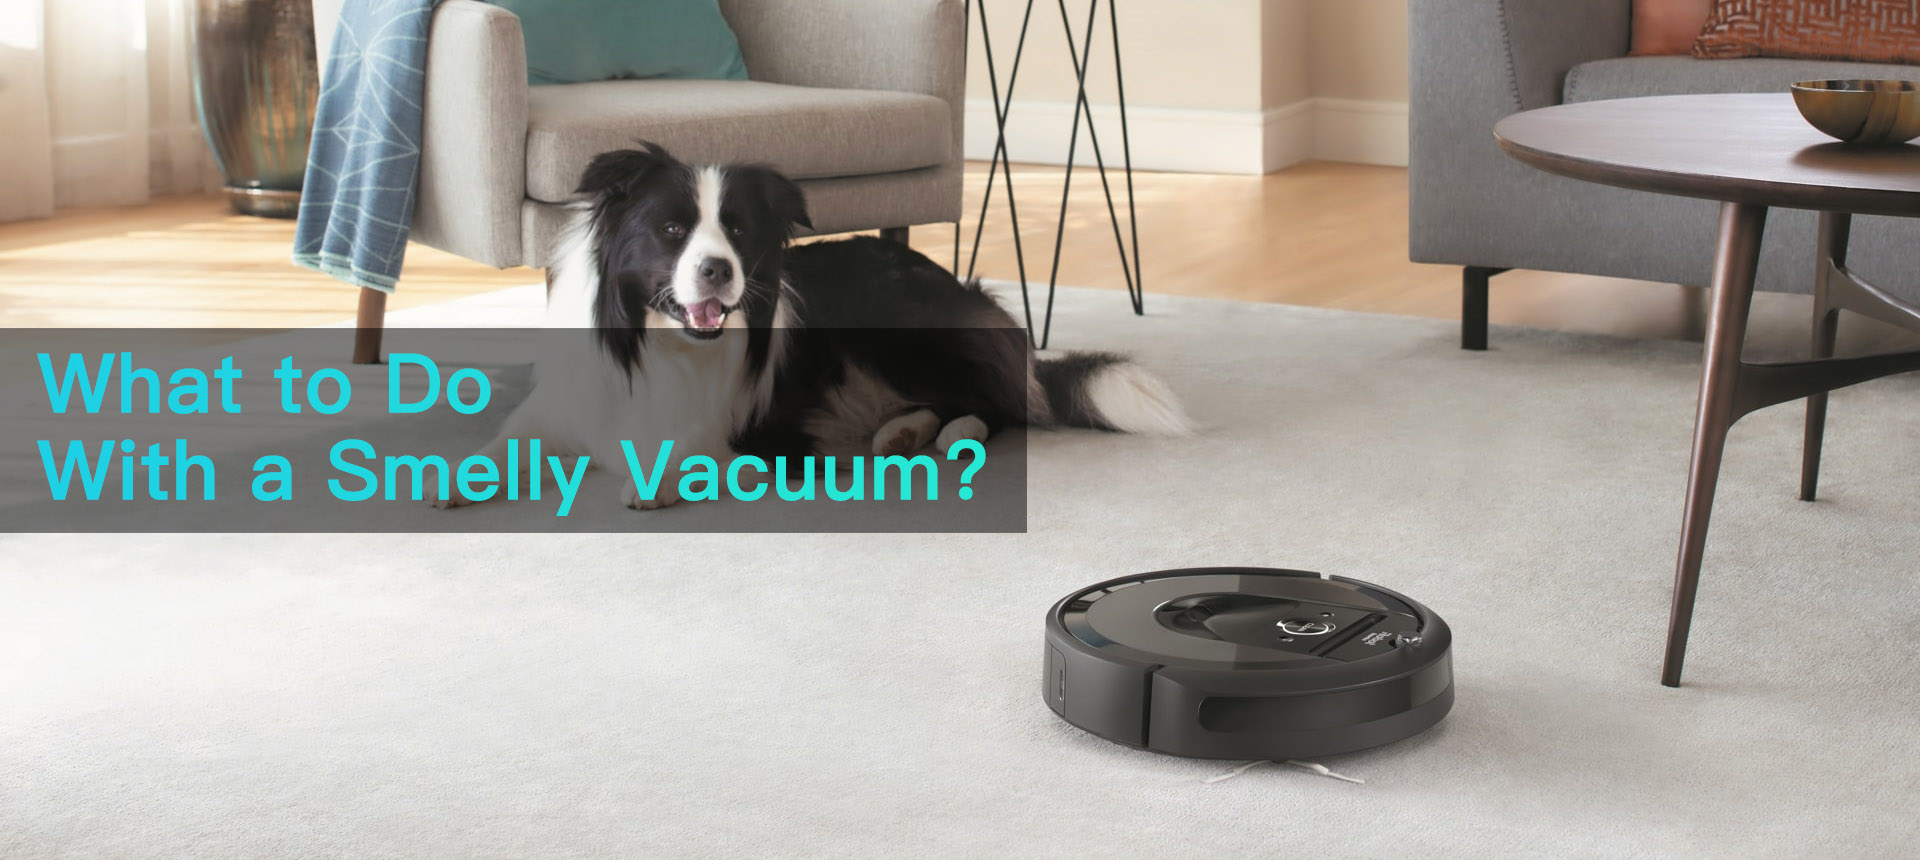 How to Remove Bad Vacuum Cleaner Smells?